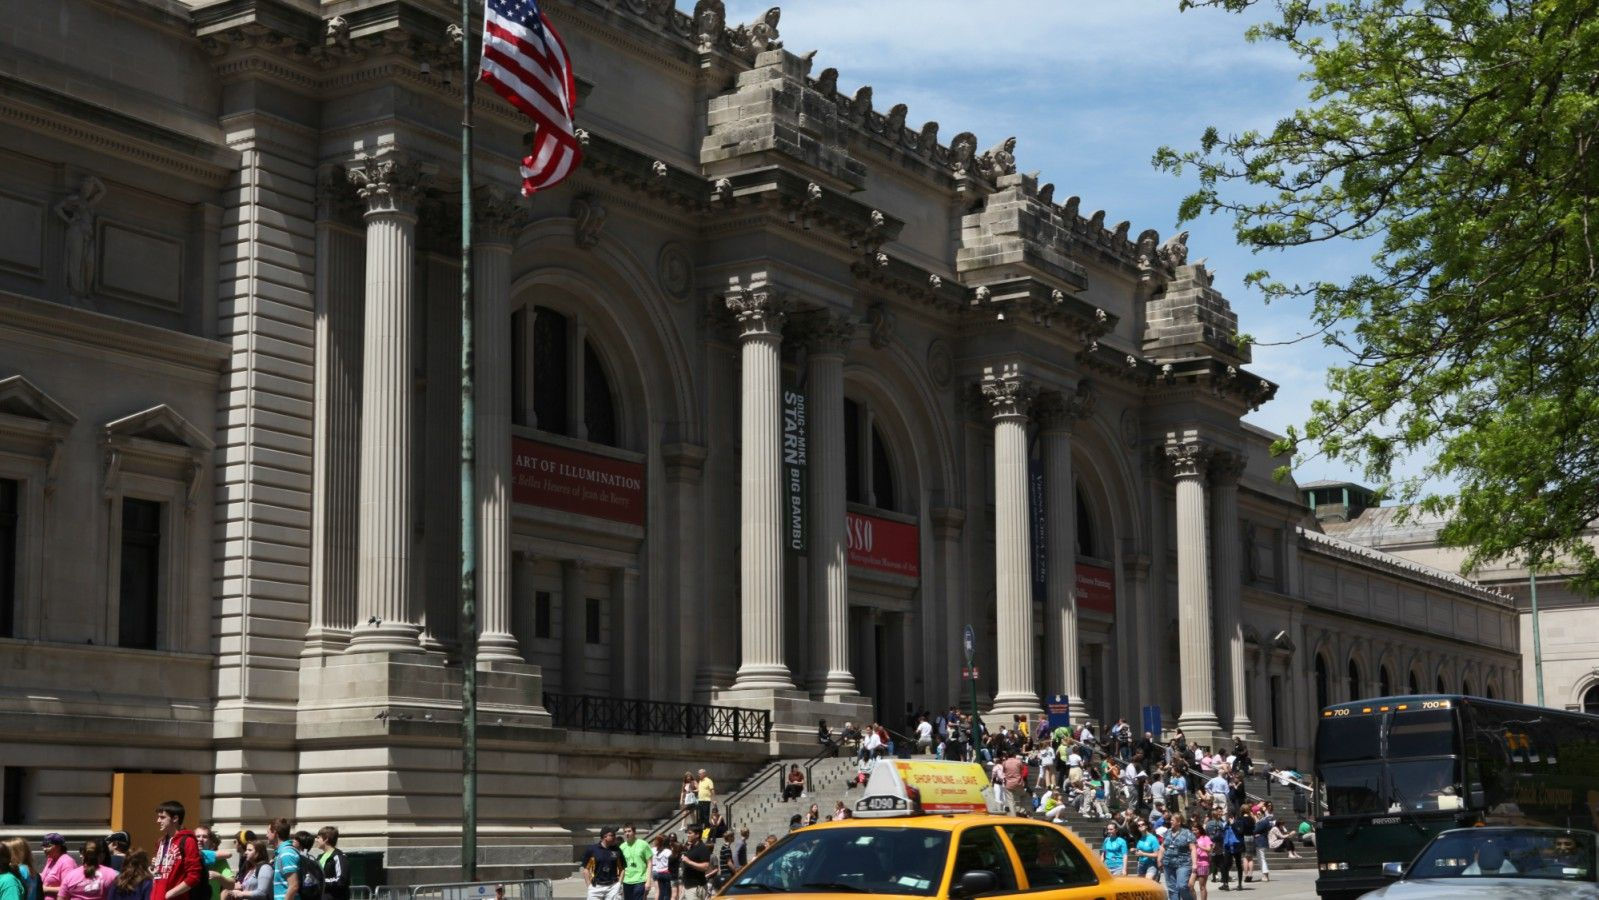 Things to Do in NYC | The Metropolitan Museum of Art